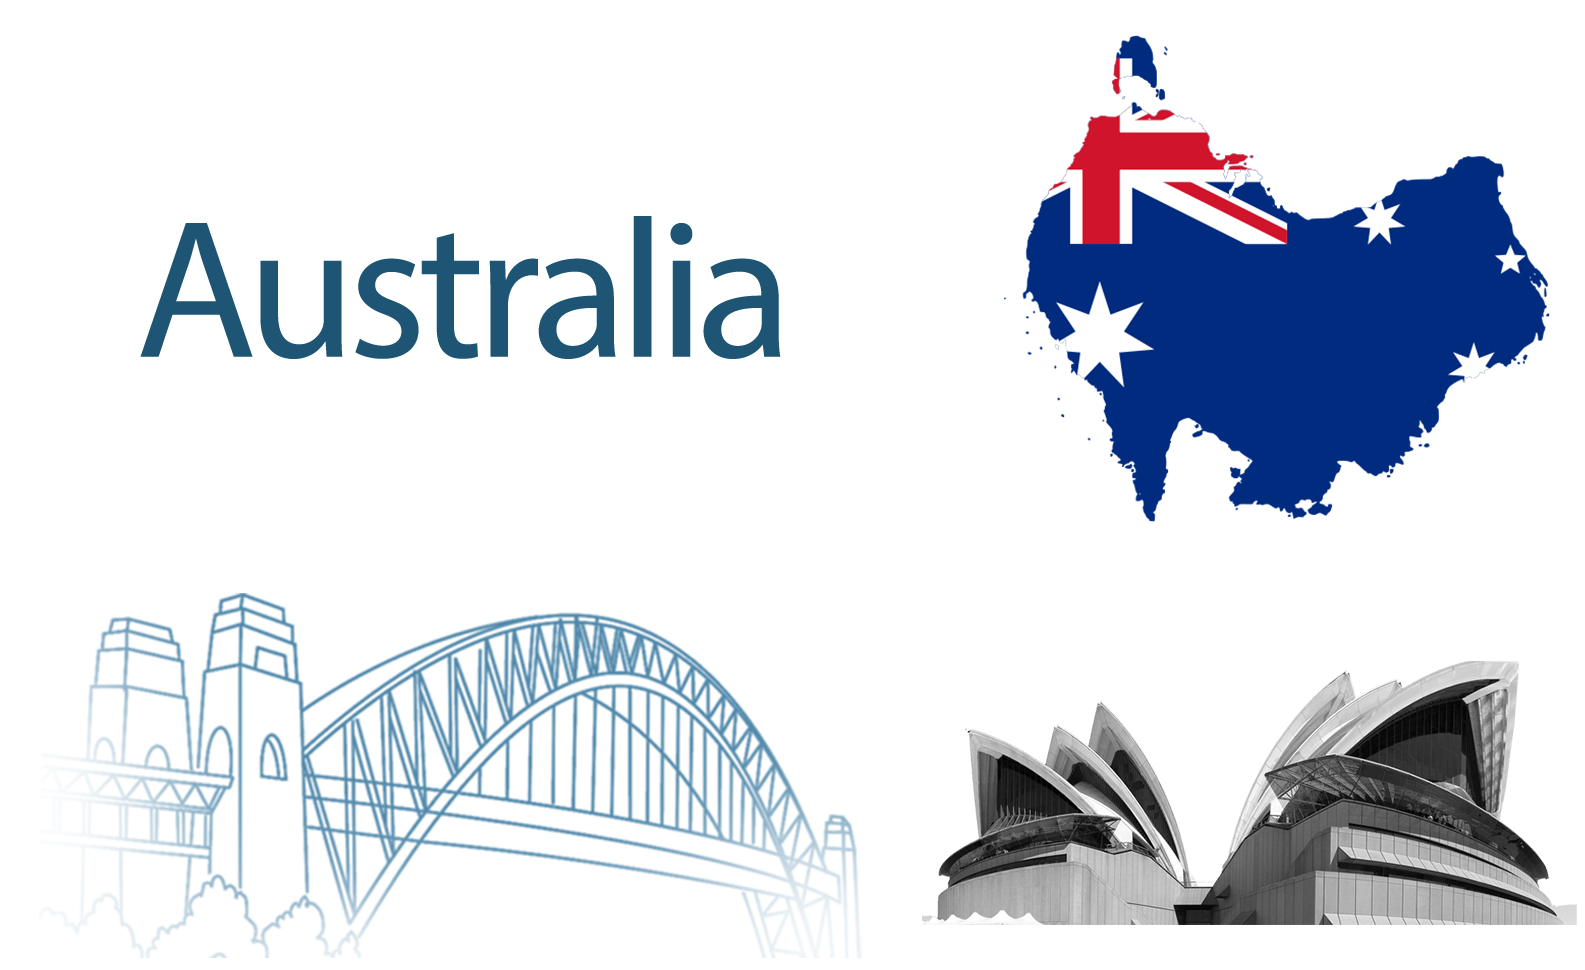 In foreignfocus education . Australia transparent png study image royalty free stock